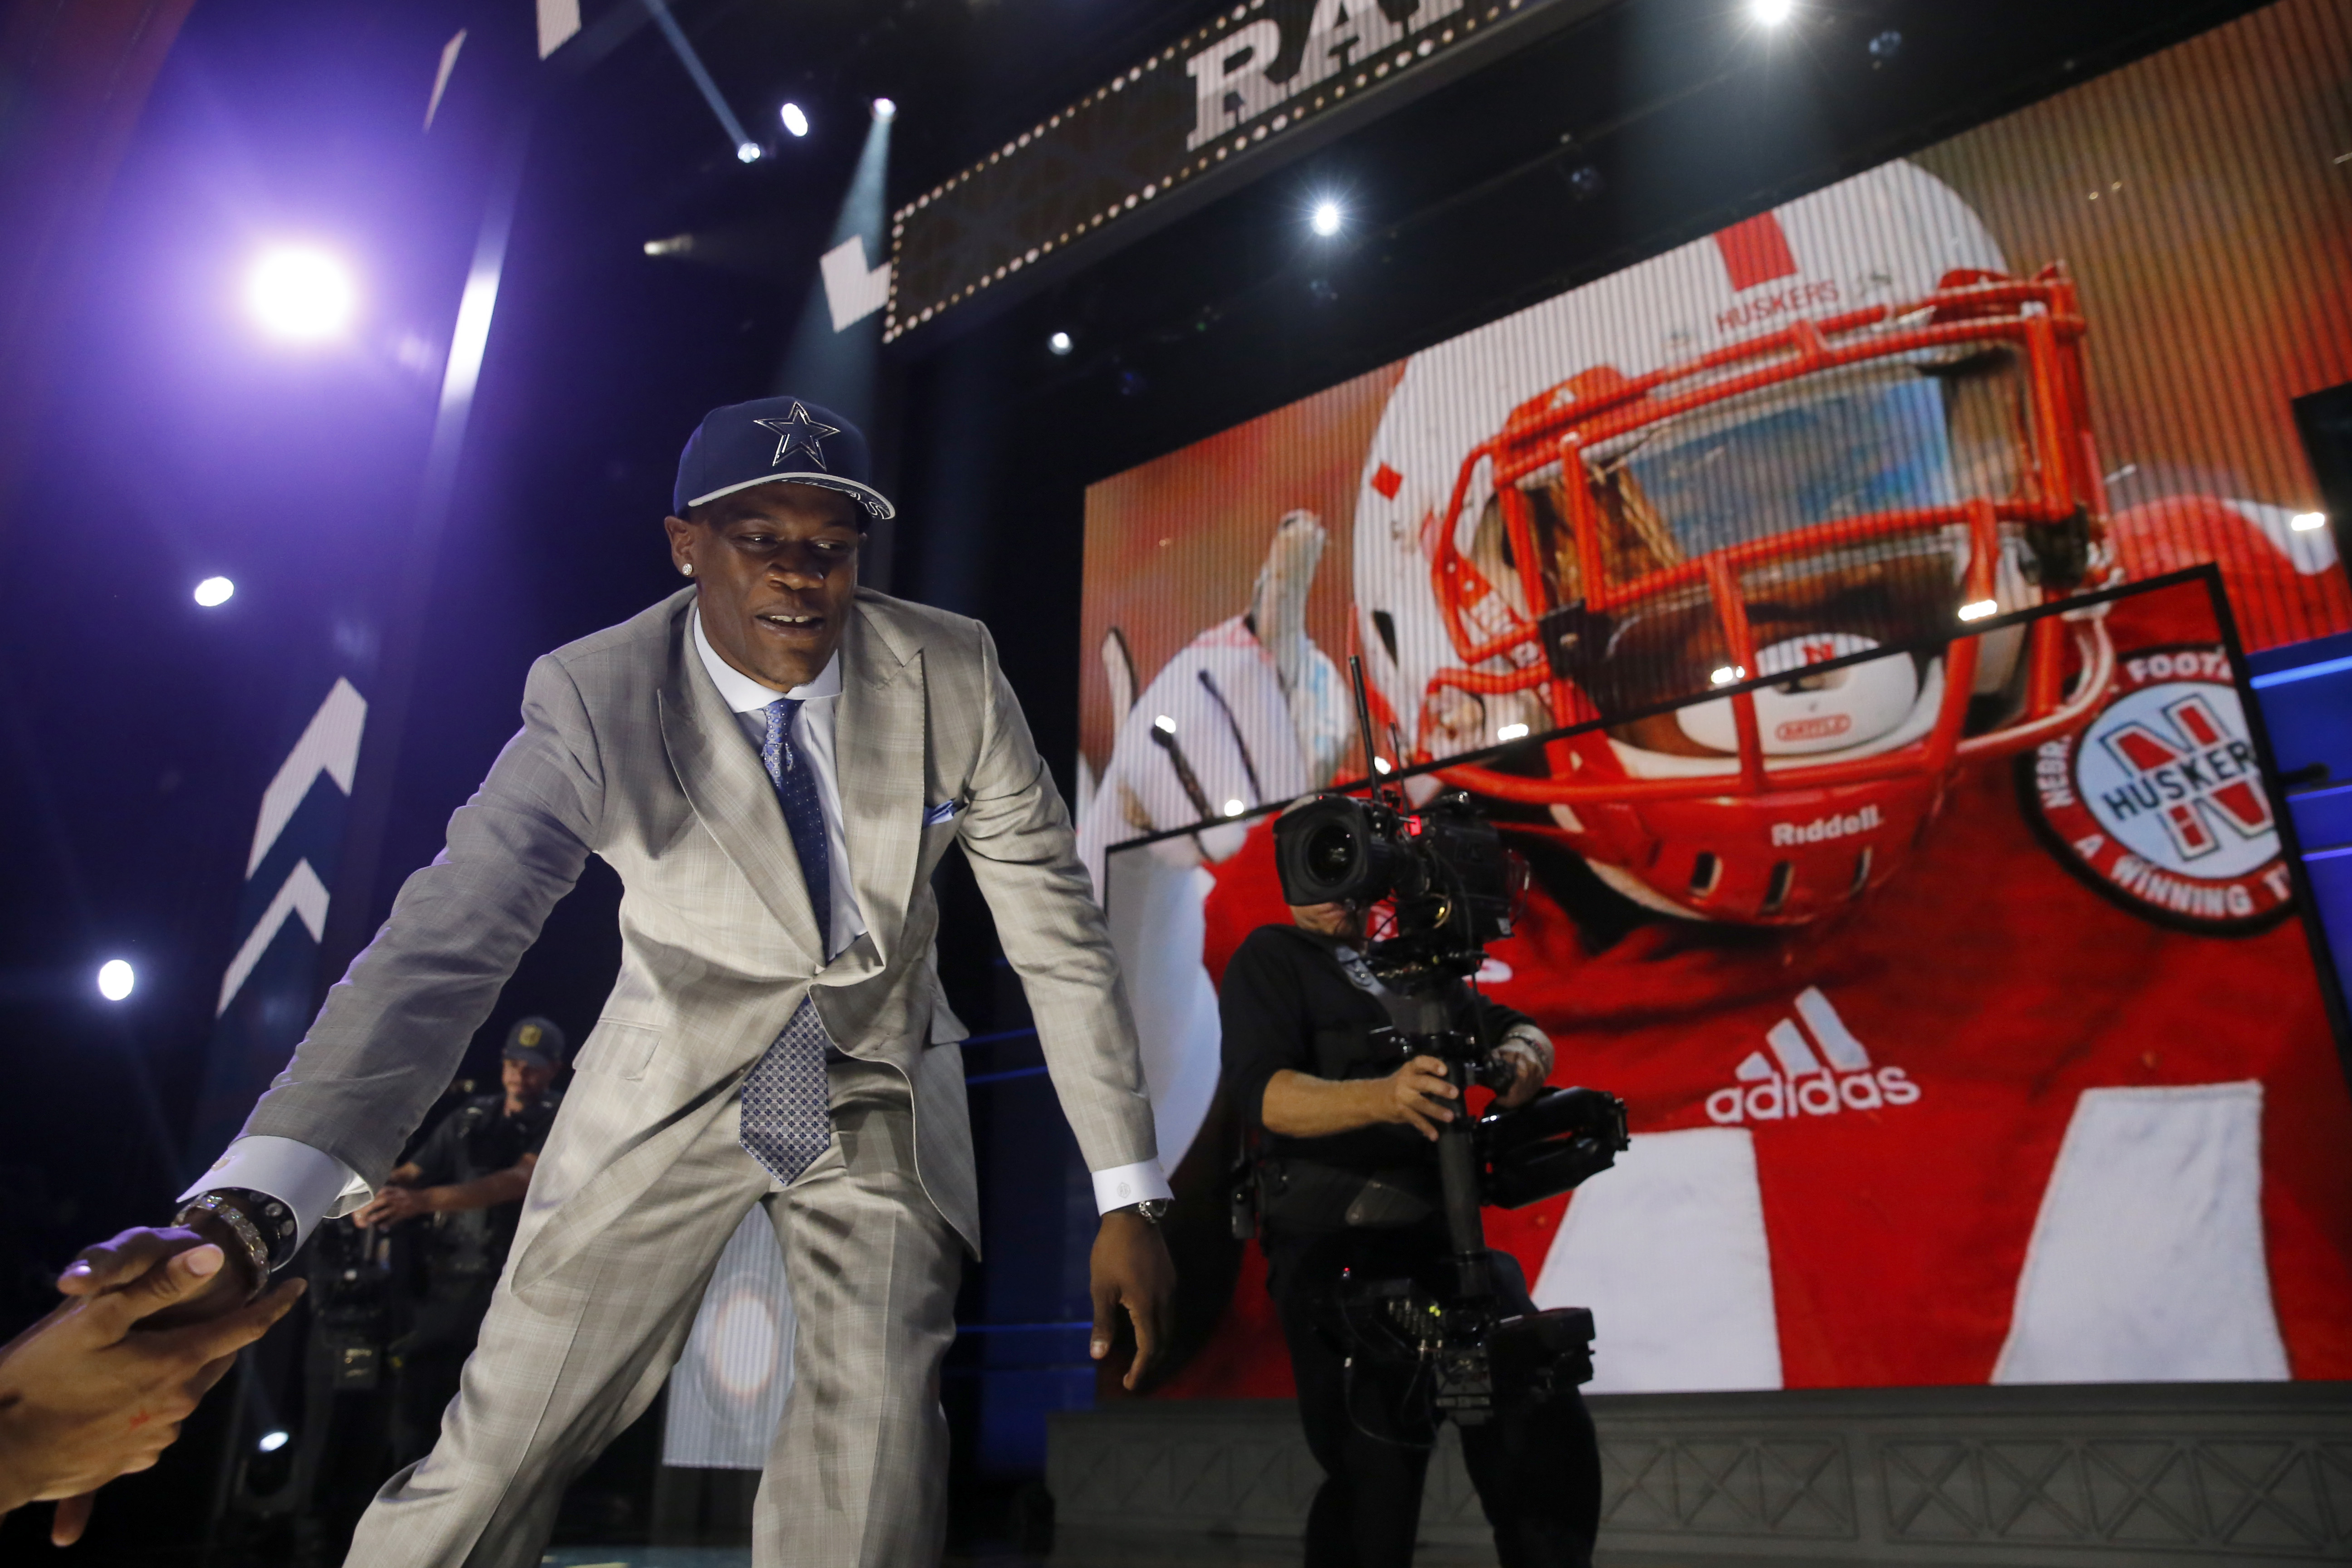 Nebraska defensive lineman Randy Gregory celebrates after being selected by the Dallas Cowboys as the 60th pick in the second round of the 2015 NFL Football Draft,  Friday, May 1, 2015, in Chicago. (AP Photo/Charles Rex Arbogast)